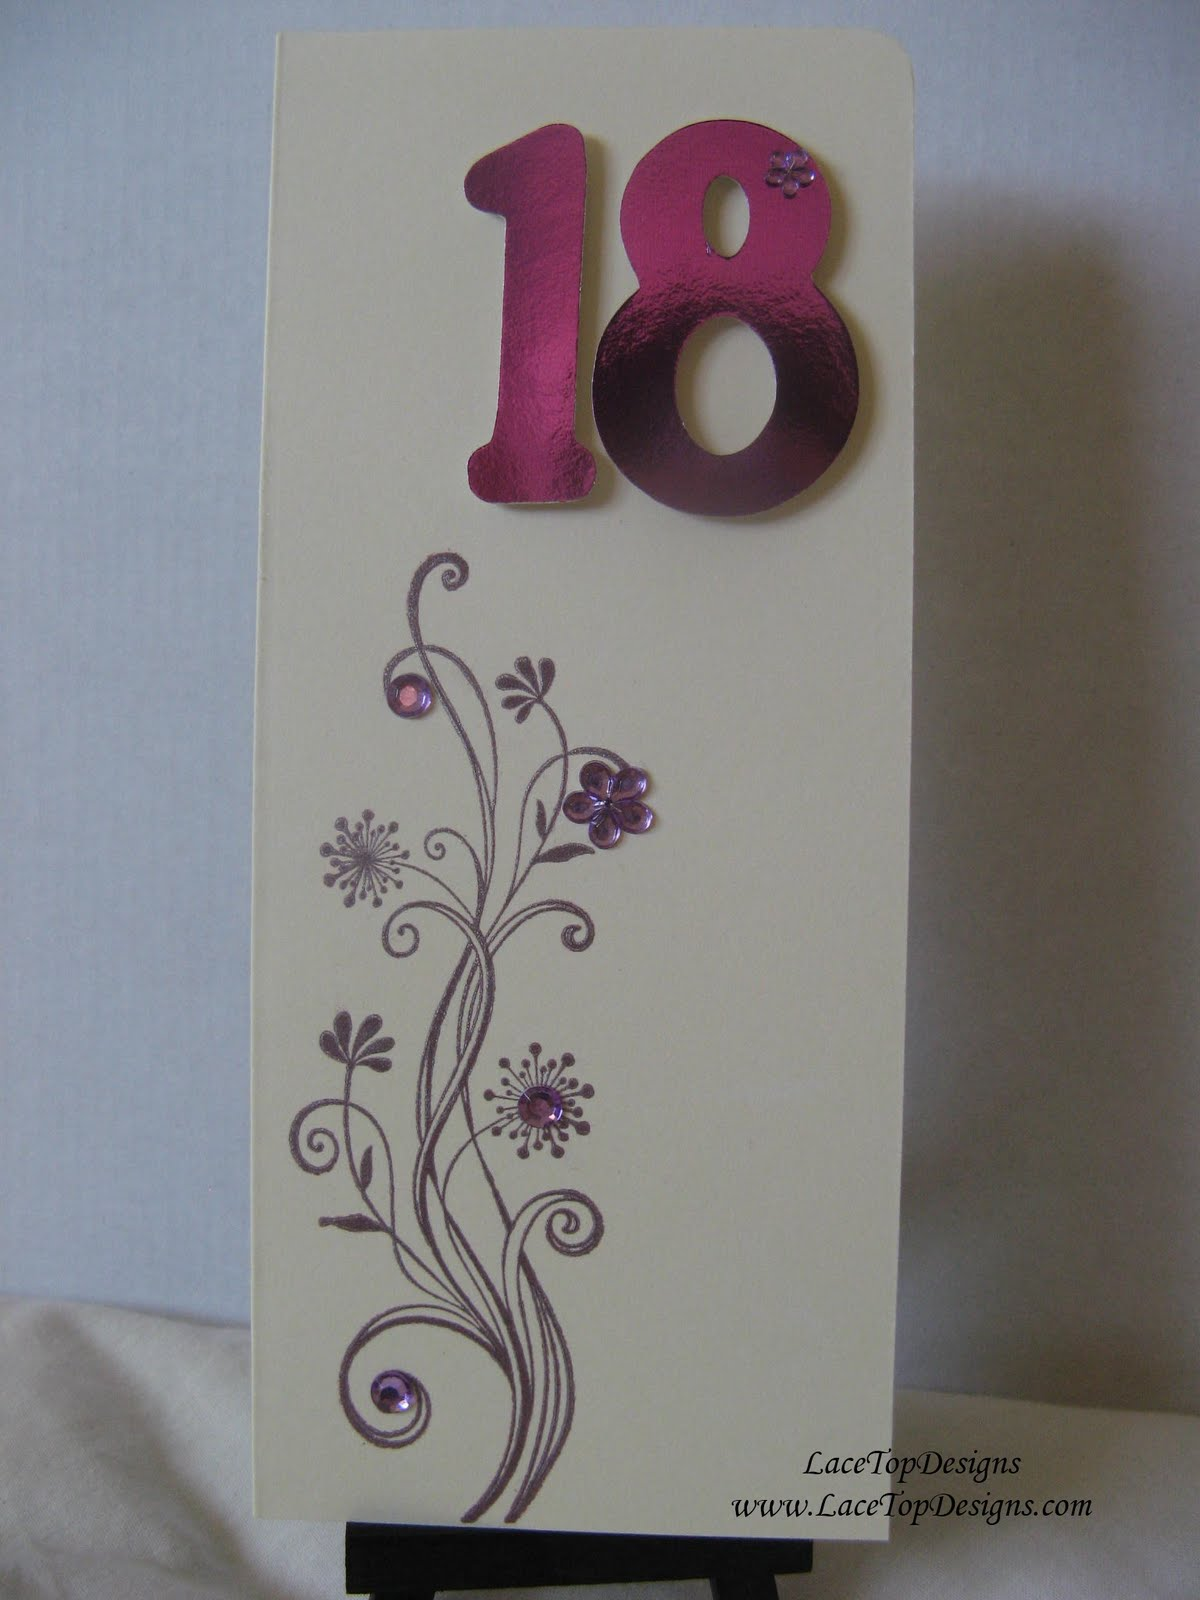 LaceTopDesigns Girly 18th Birthday Card using Making Memories slice – 18th Birthday Card Ideas